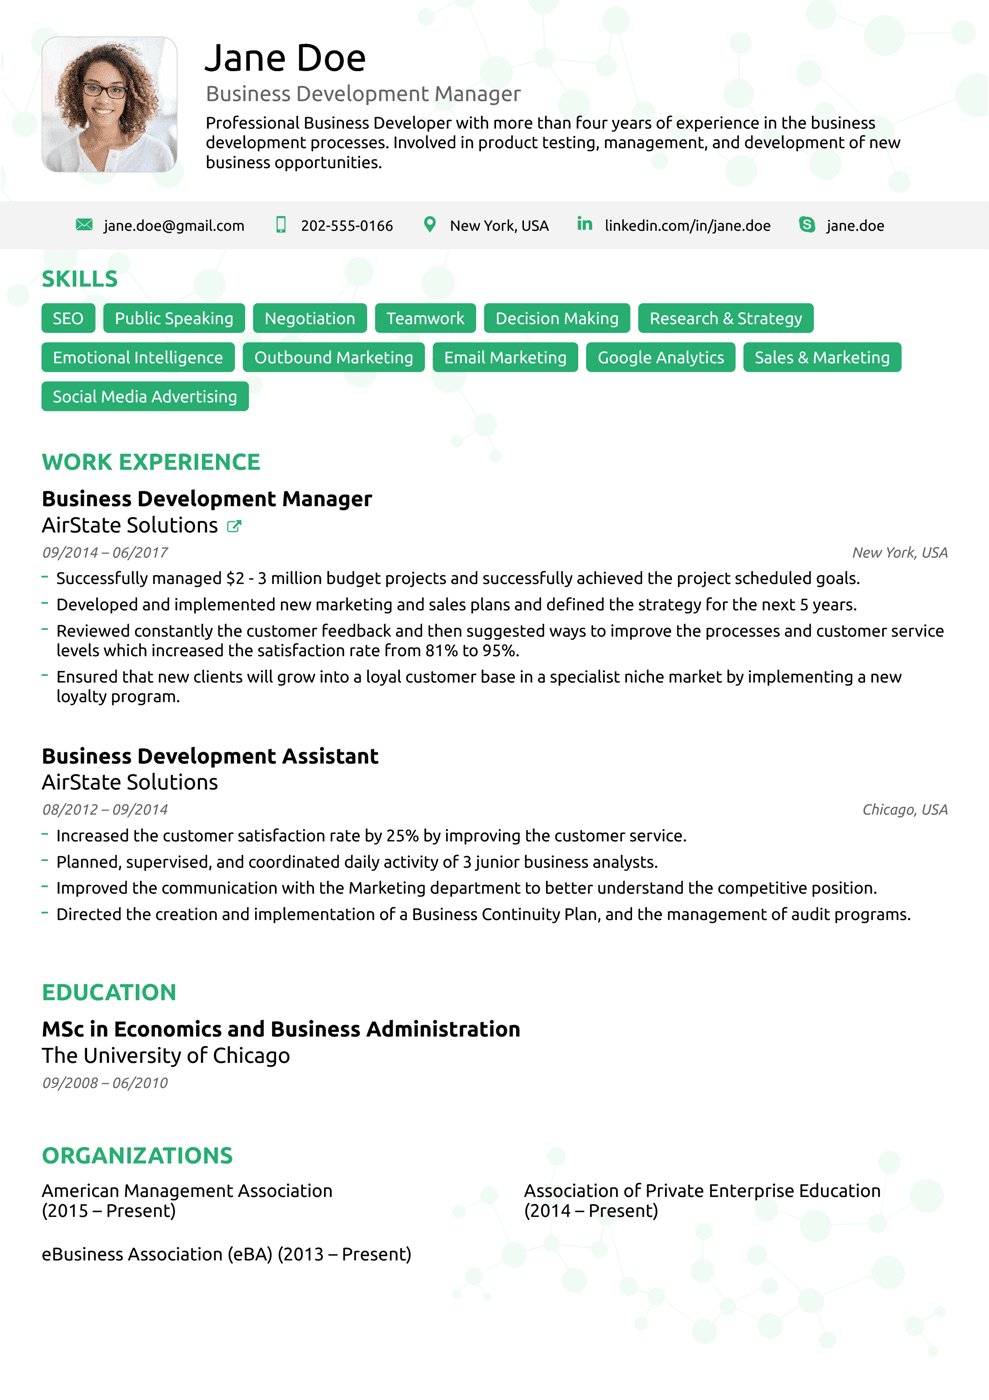 Resume Templats | 2018 Professional Resume Templates As They Should Be 8